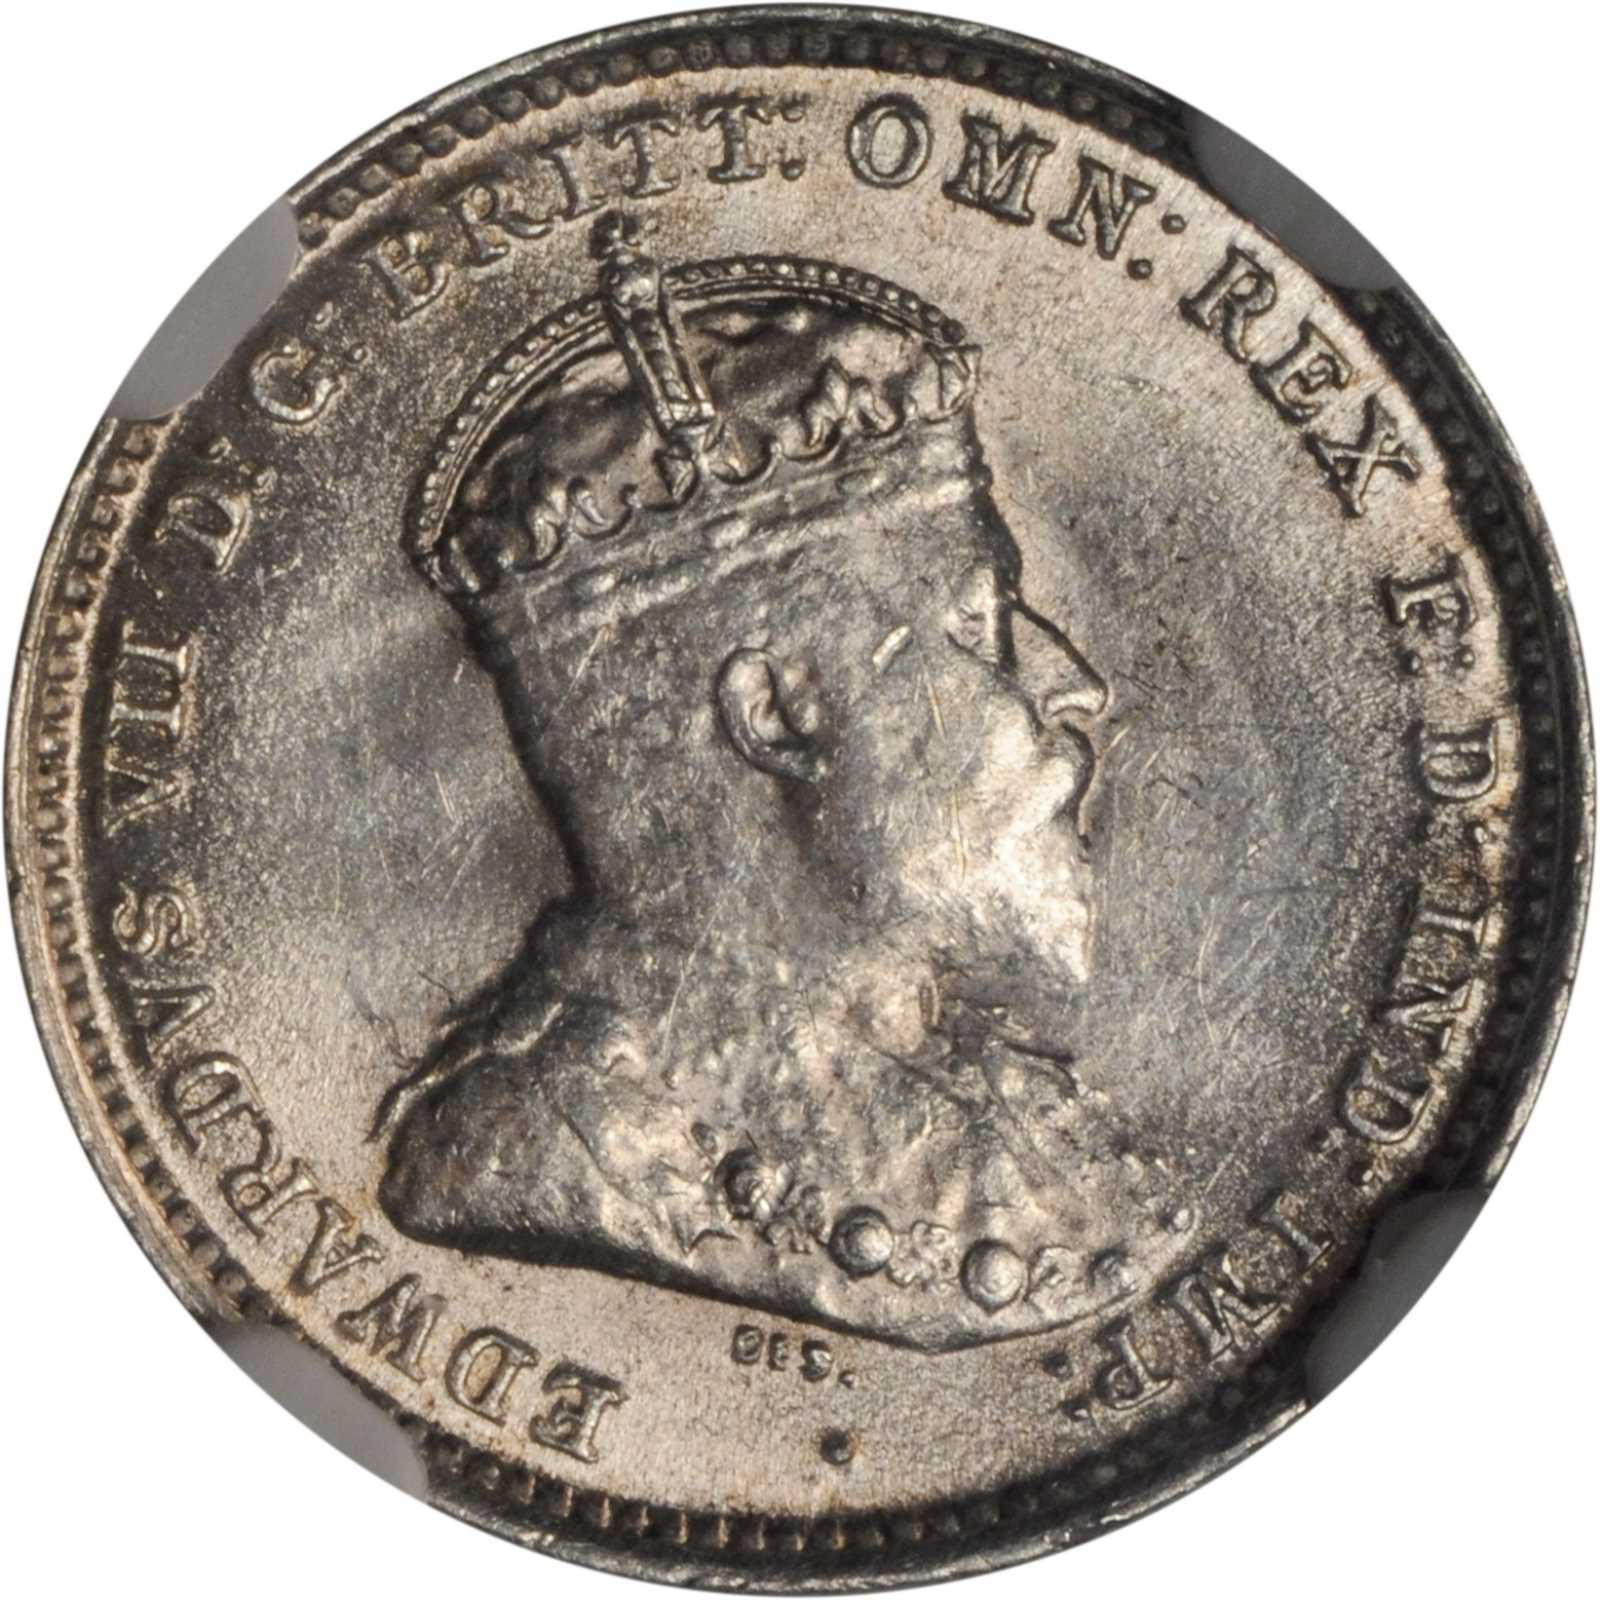 Threepence: Photo Australia 1910 3 pence